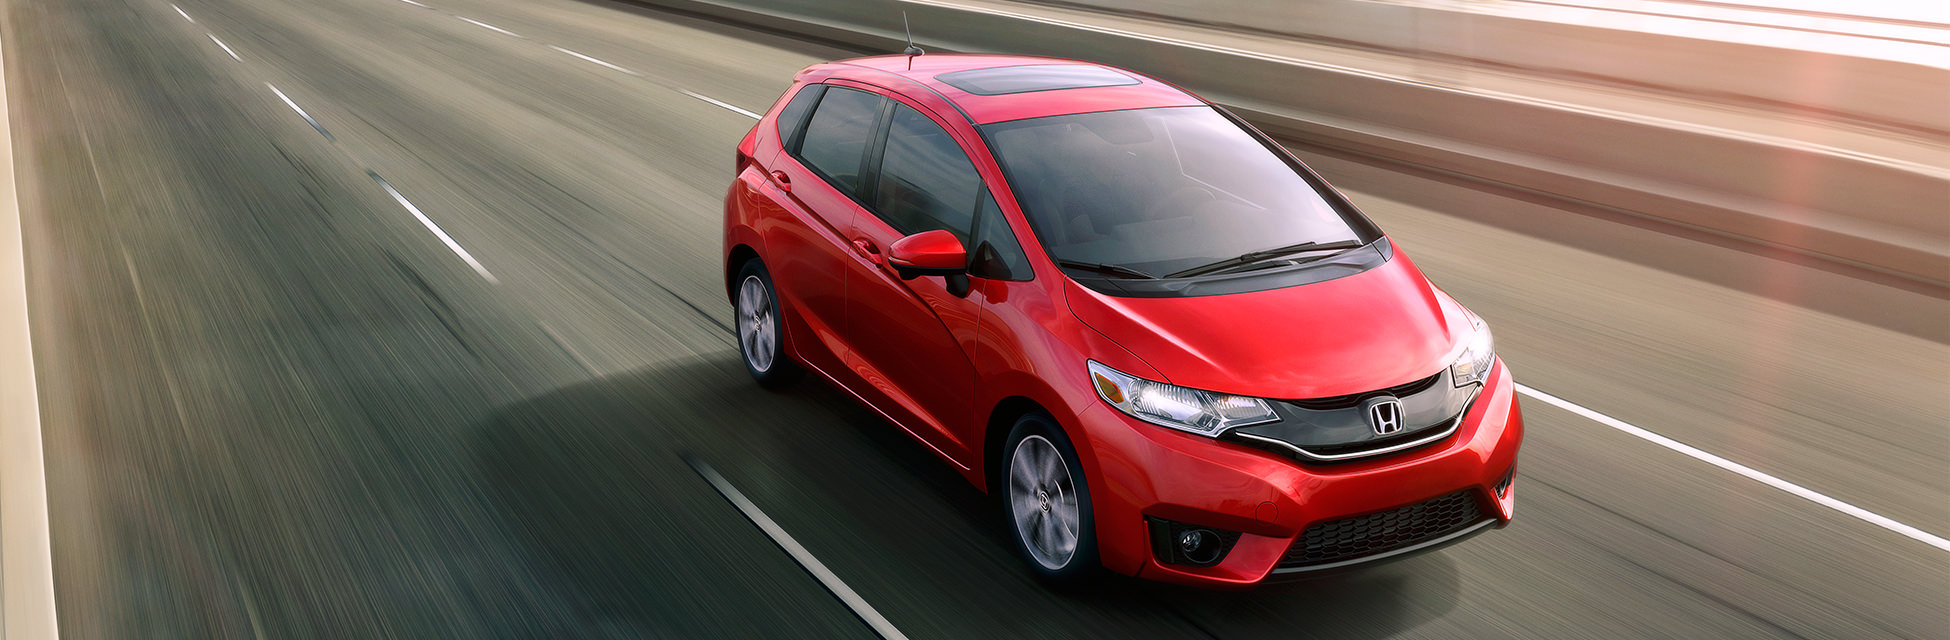 New 2016 Honda Fit Starting at $15,890*